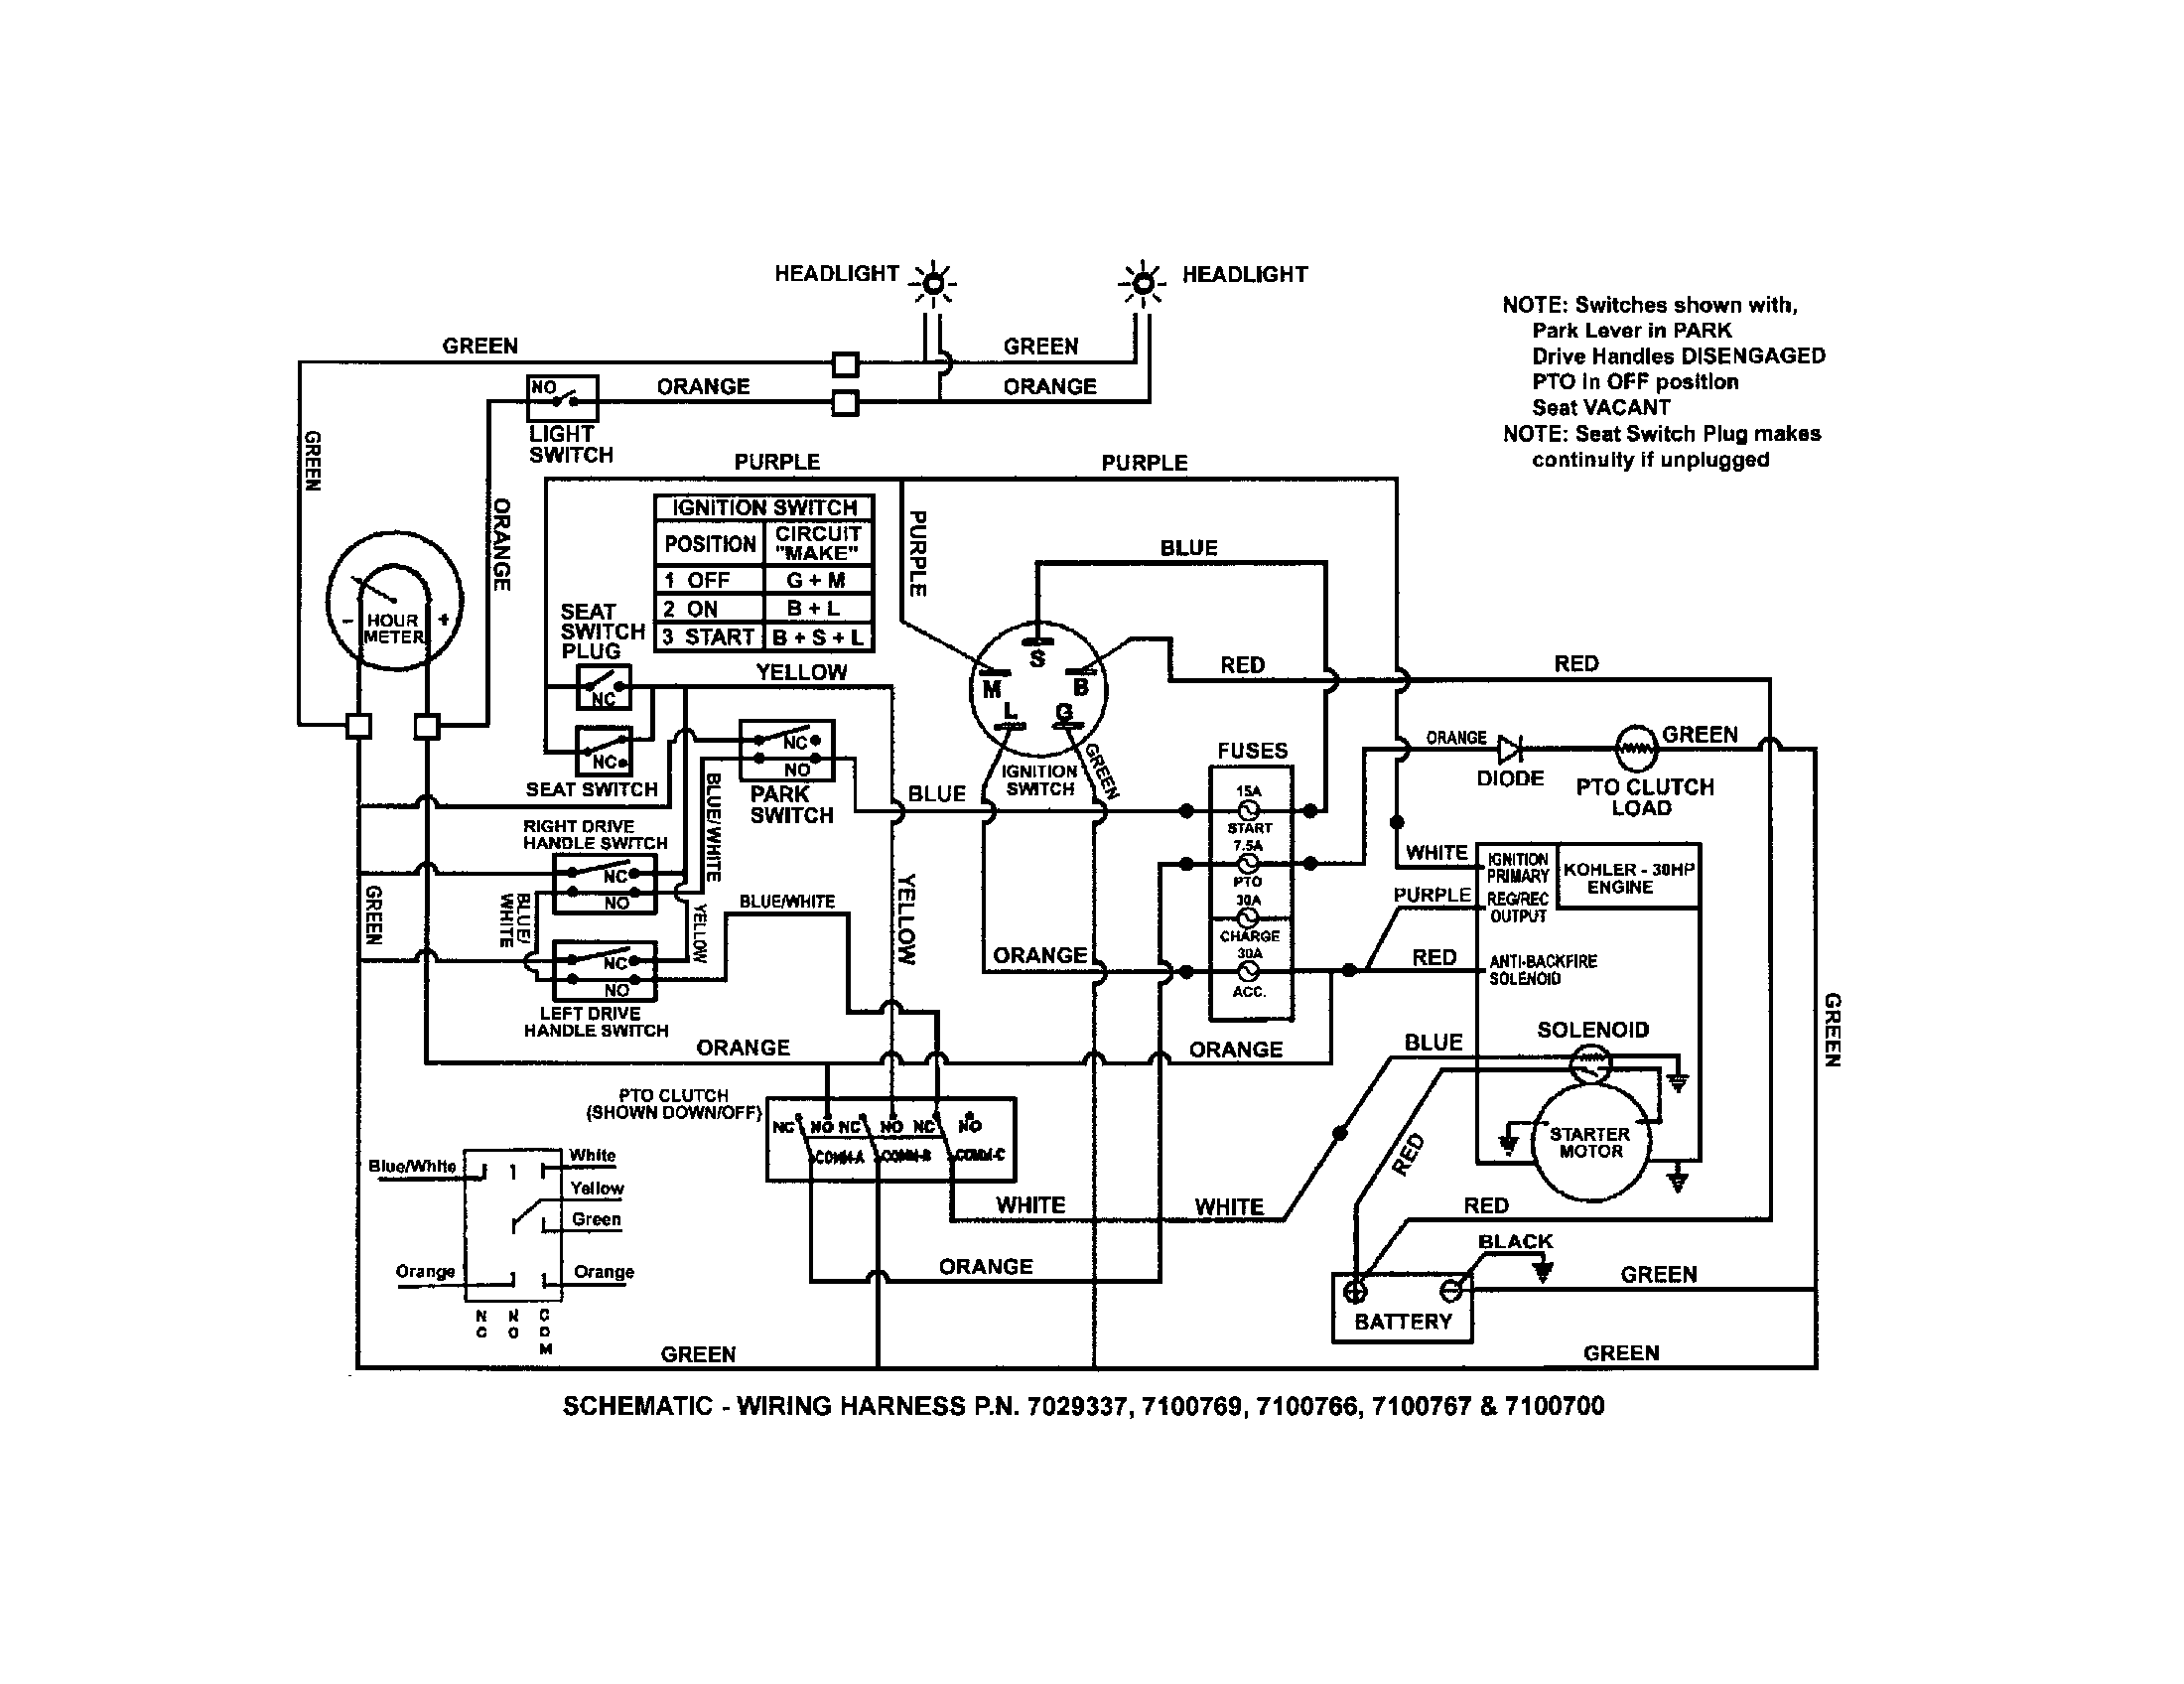 1957 Chevy Fuse Box Wiring Diagram : 56 Chevy Fuse Box